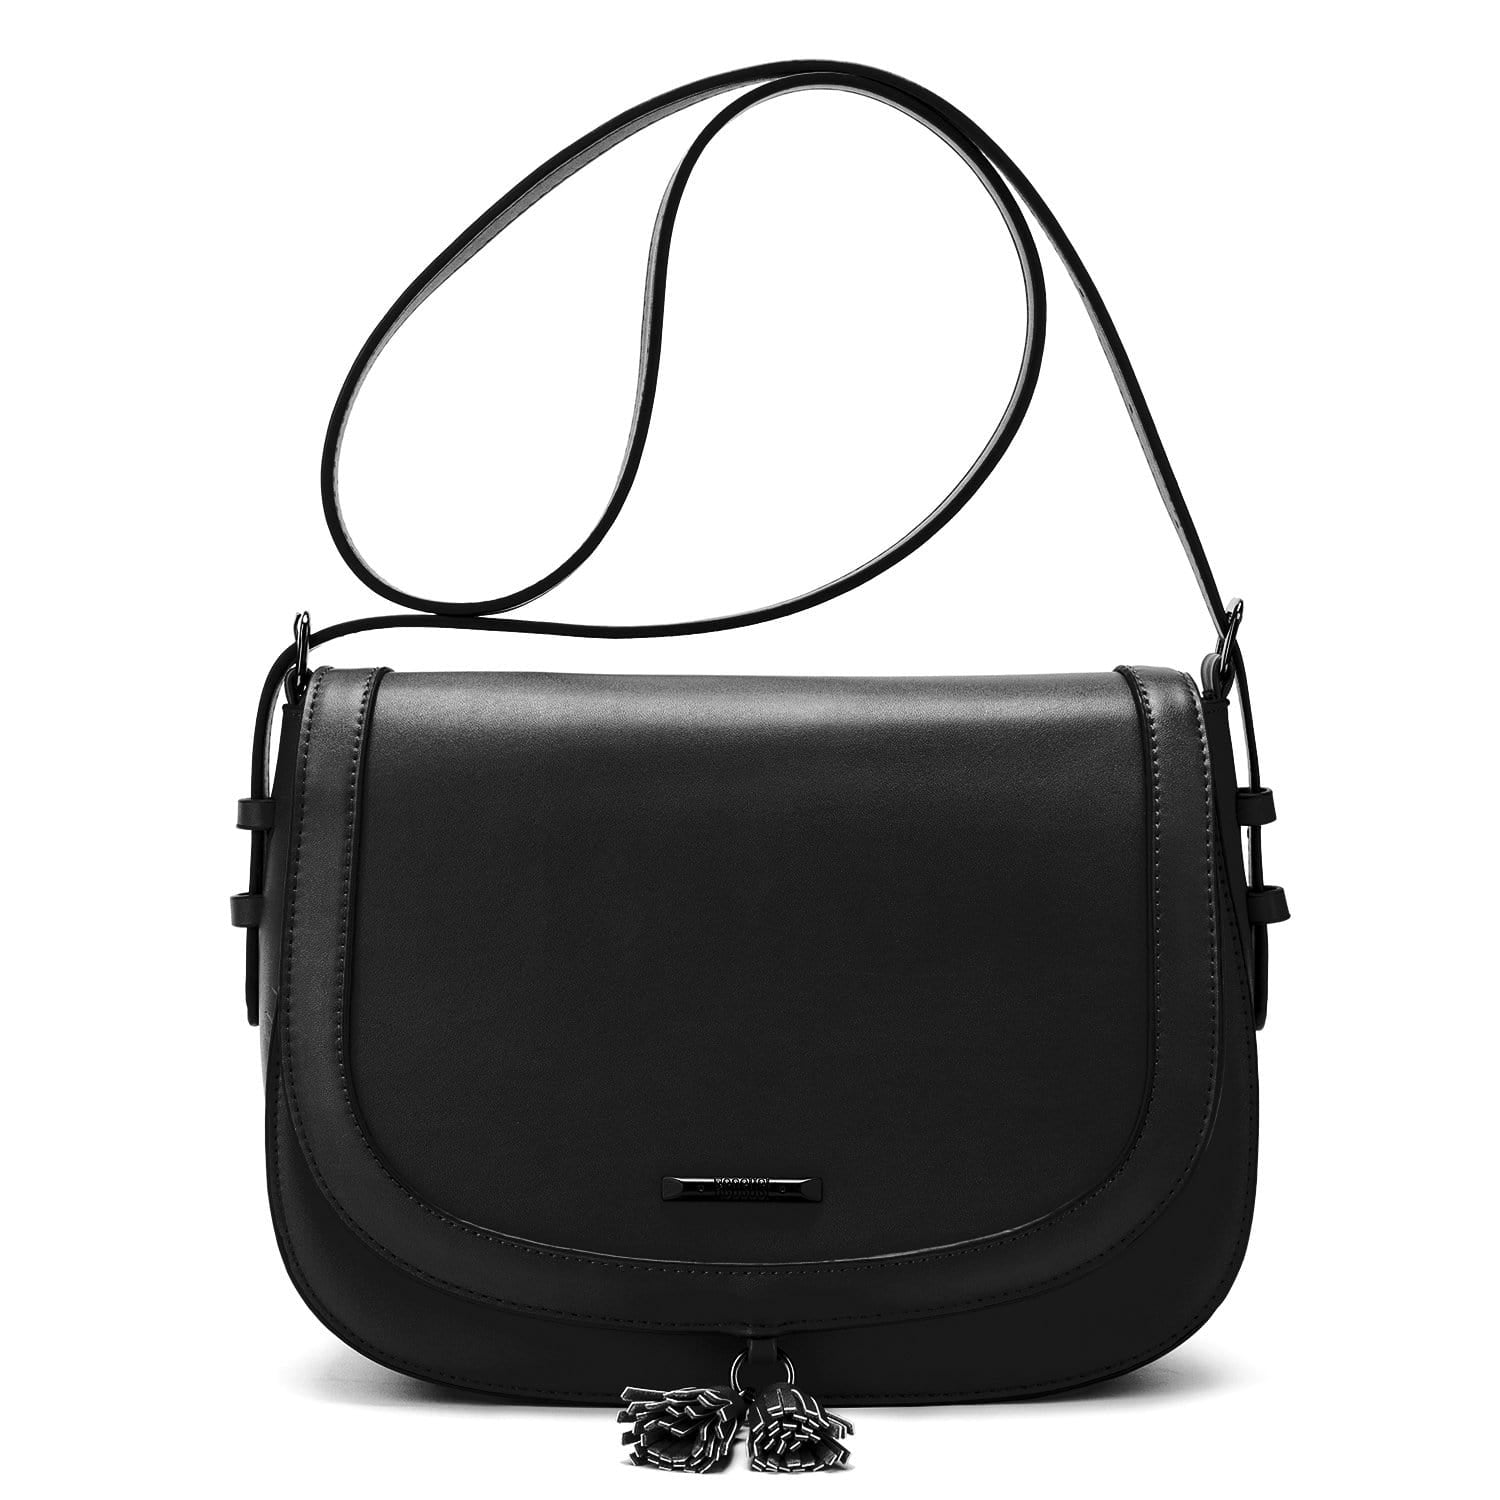 65c9c63133aa Women s Saddle Bag Purses Crossbody Shoulder Bag with Flap Top   Tassel  Satchel for 9.7 inch